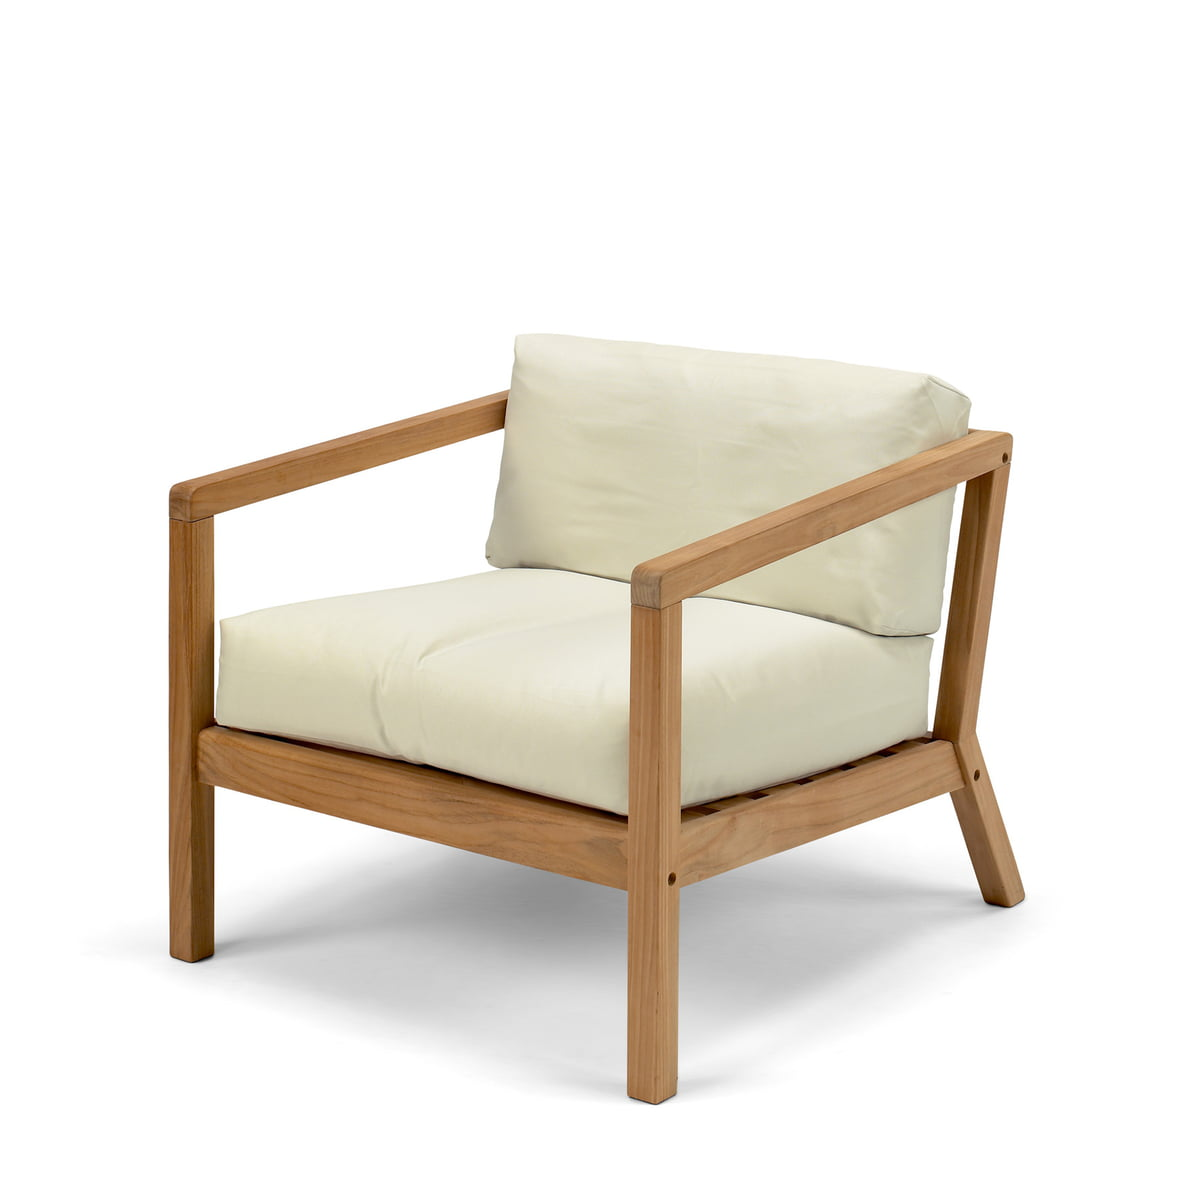 Exceptionnel Virkelyst Chair By Skagerak Made Of Teak Wood In Eggshell